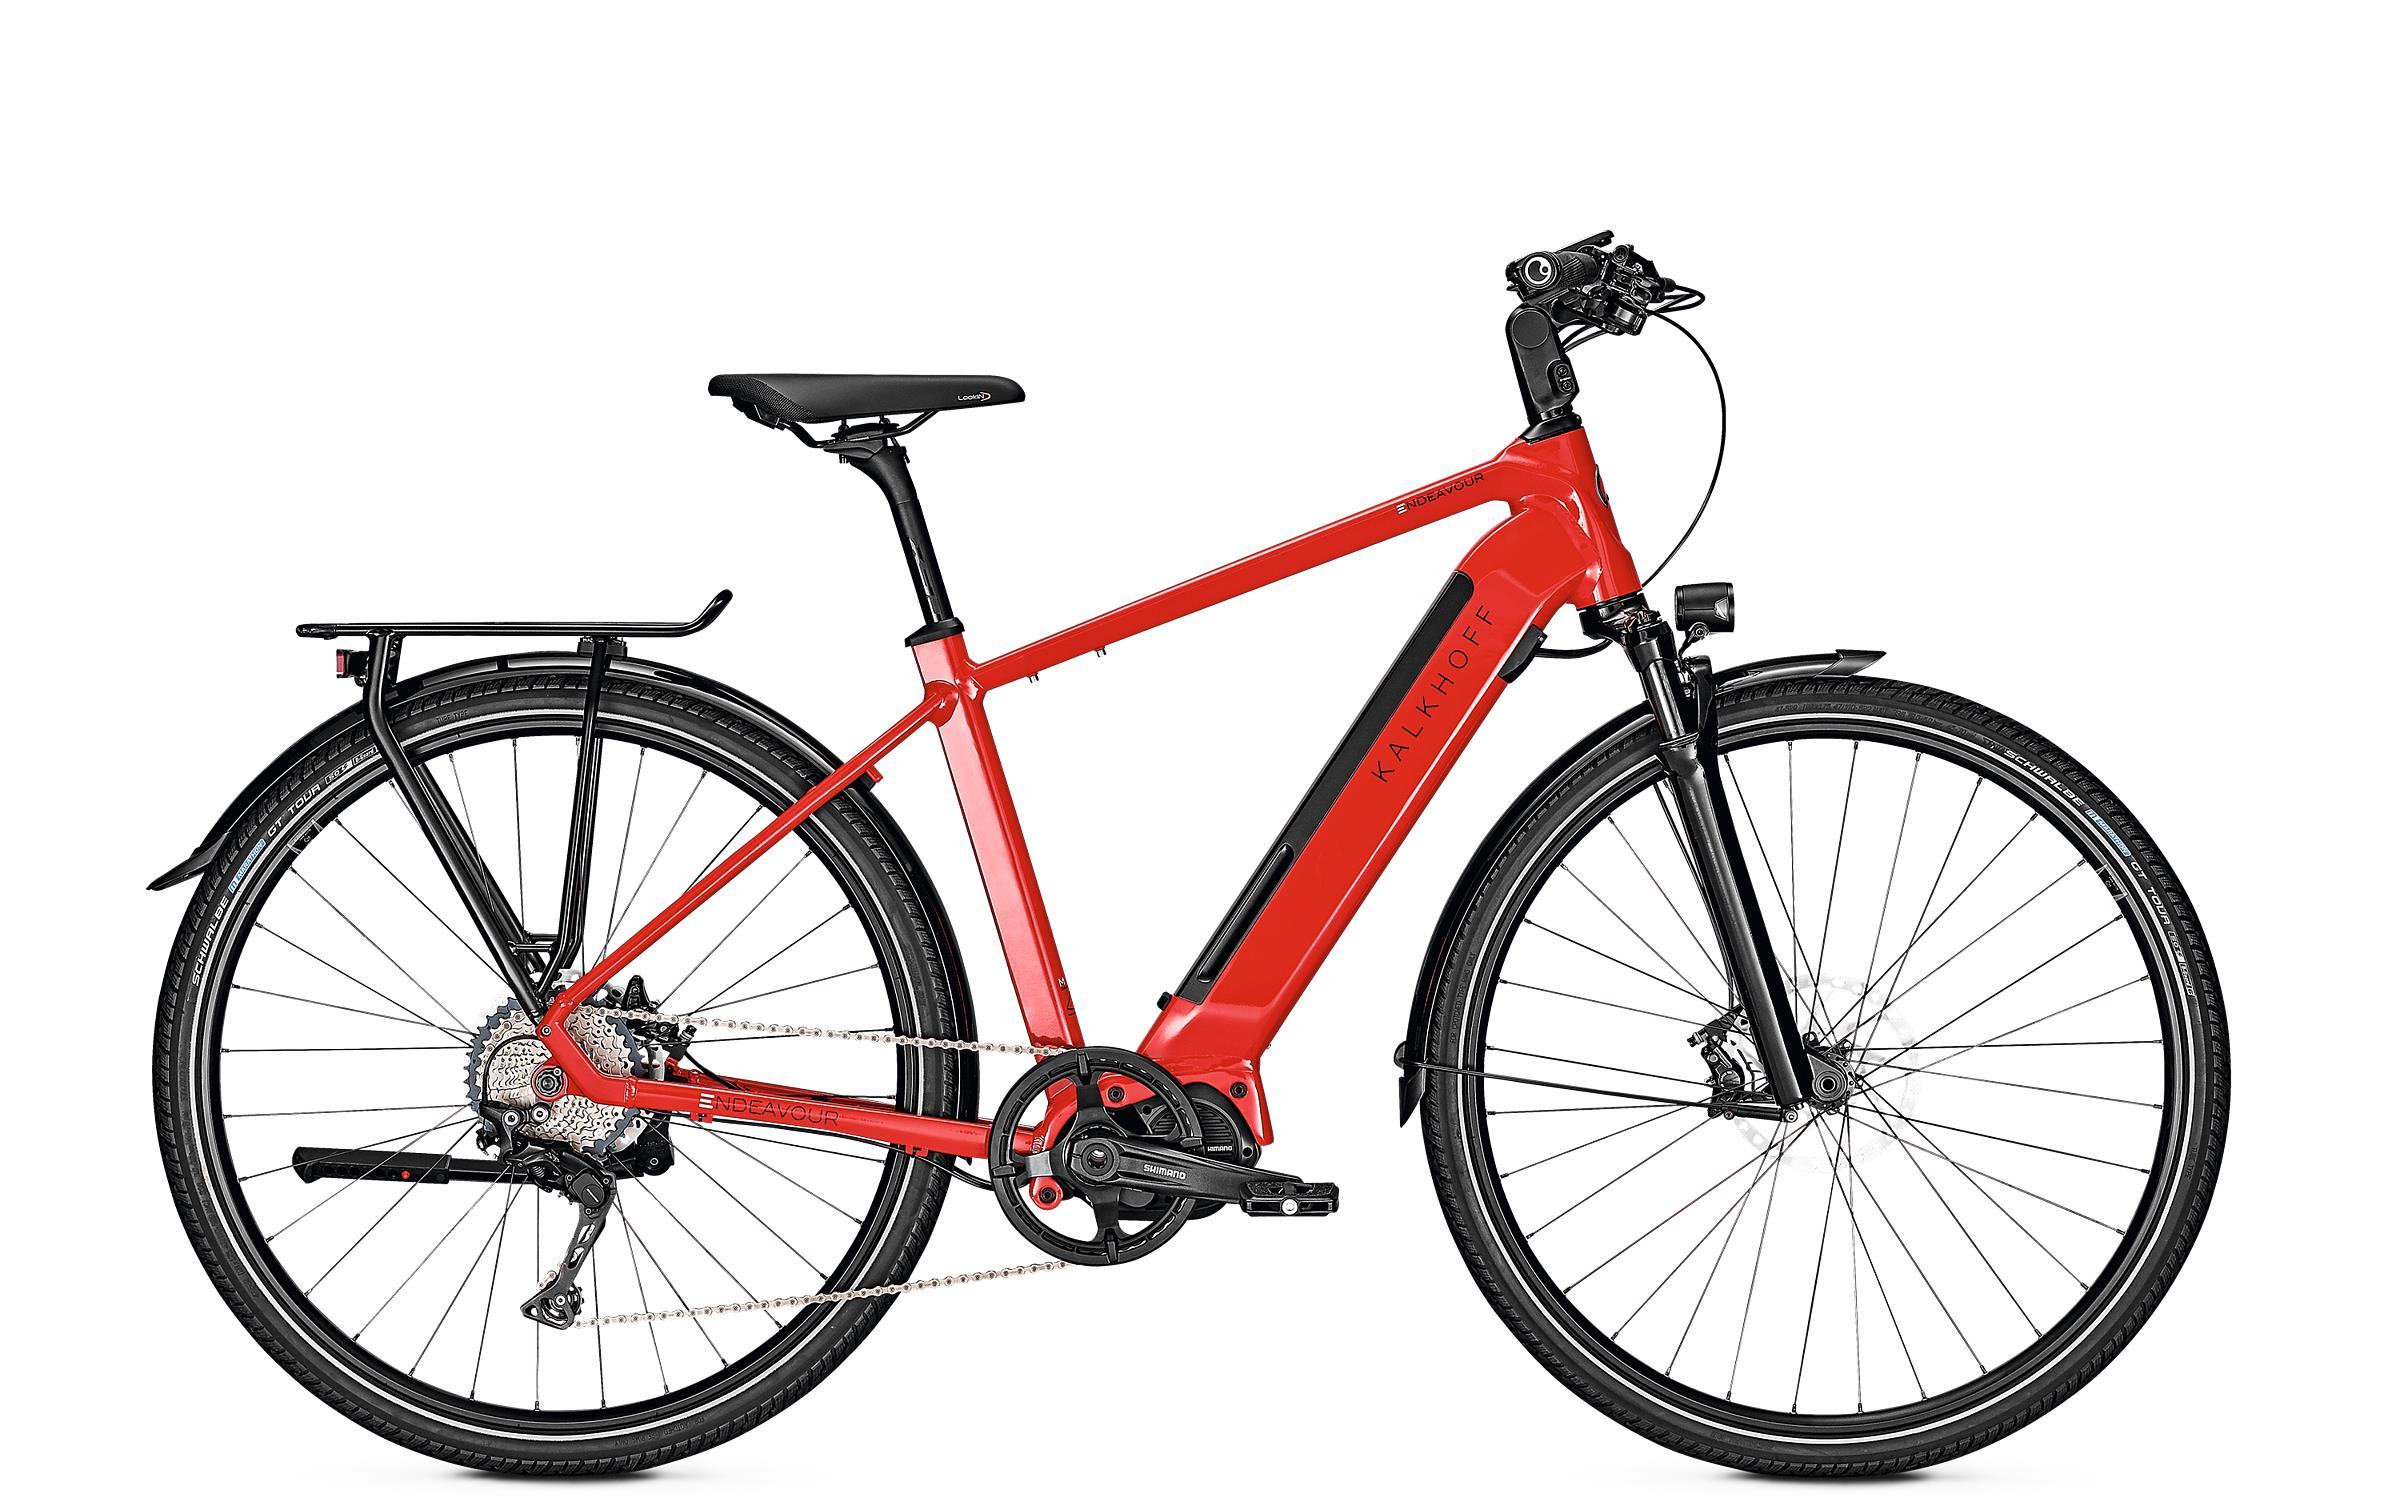 Kalkhoff ENDEAVOUR 5.S EXCITE - 28 Diamant 540 Wh -  firered glossy 2019